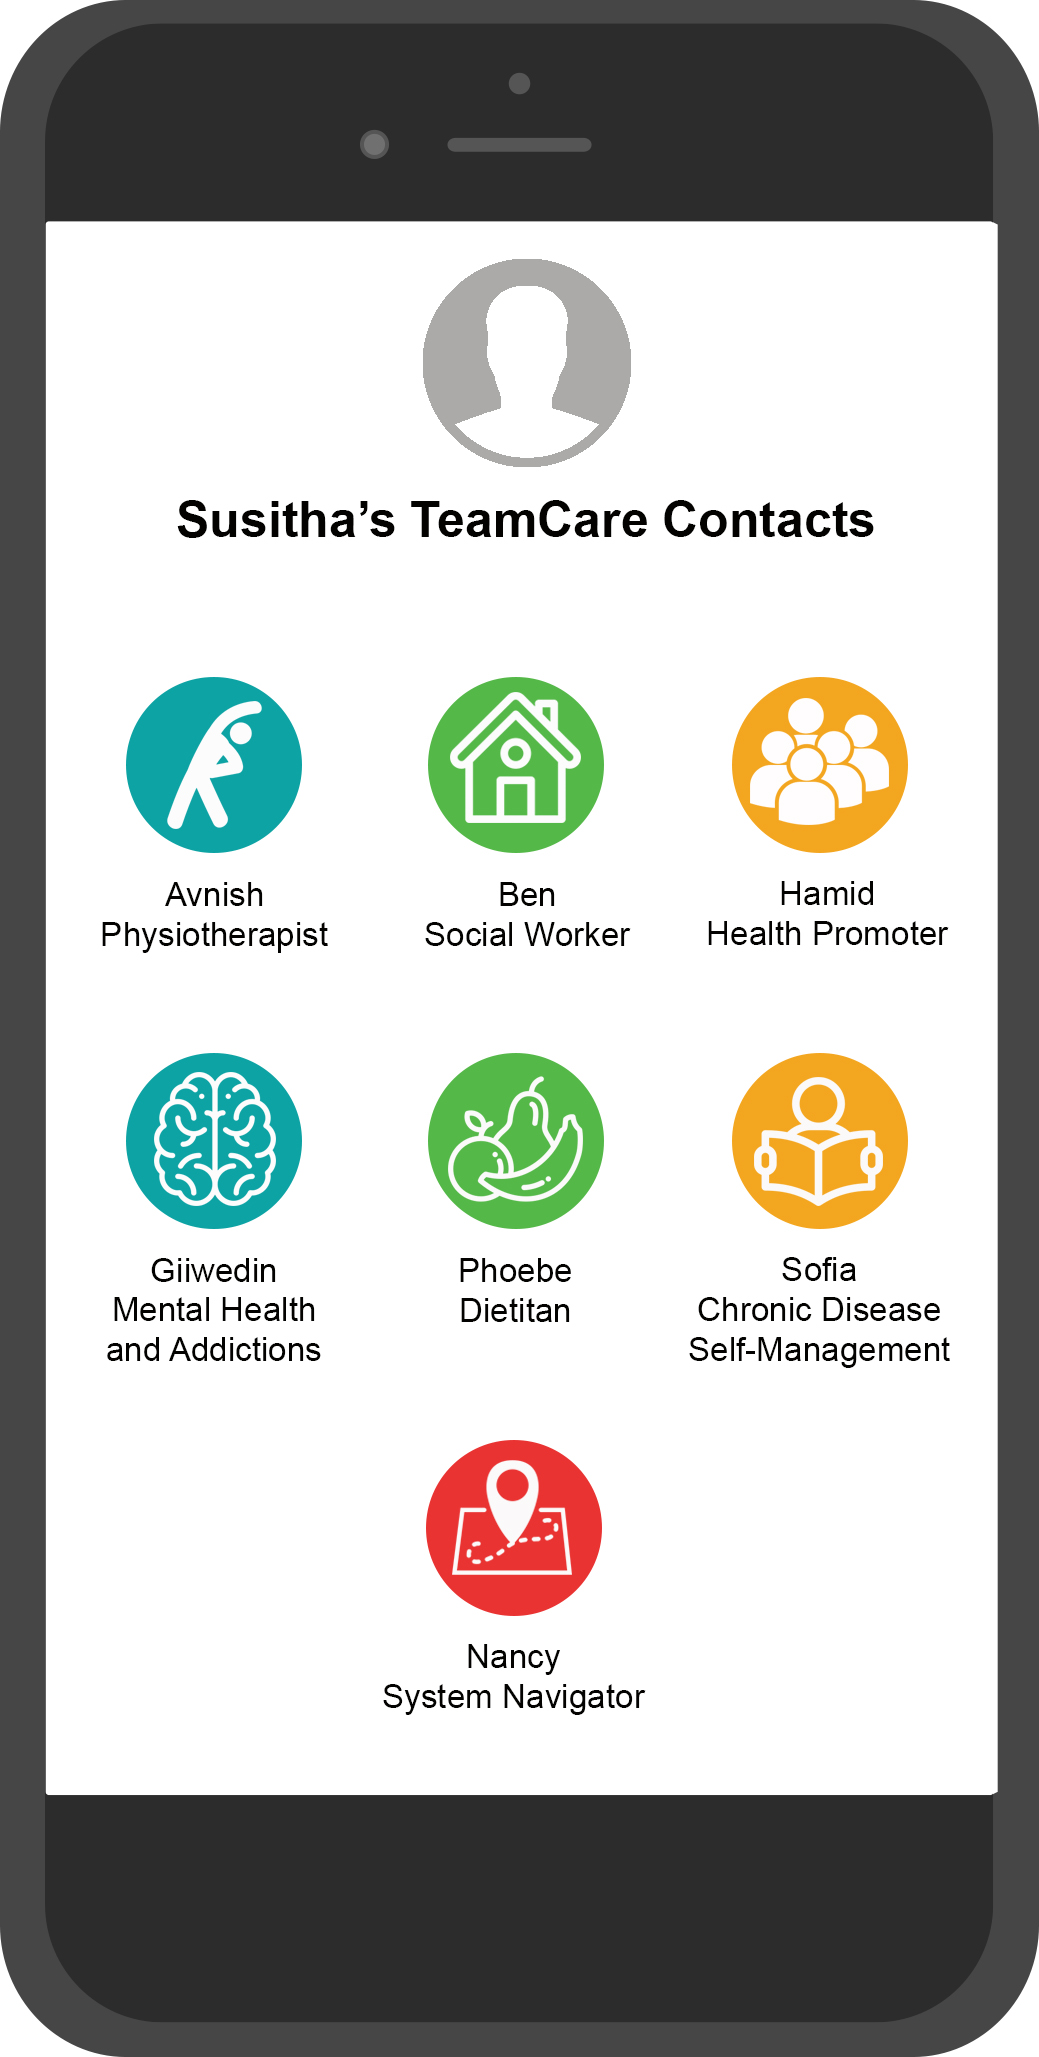 Image of Susitha's smartphone showing TeamCare contacts